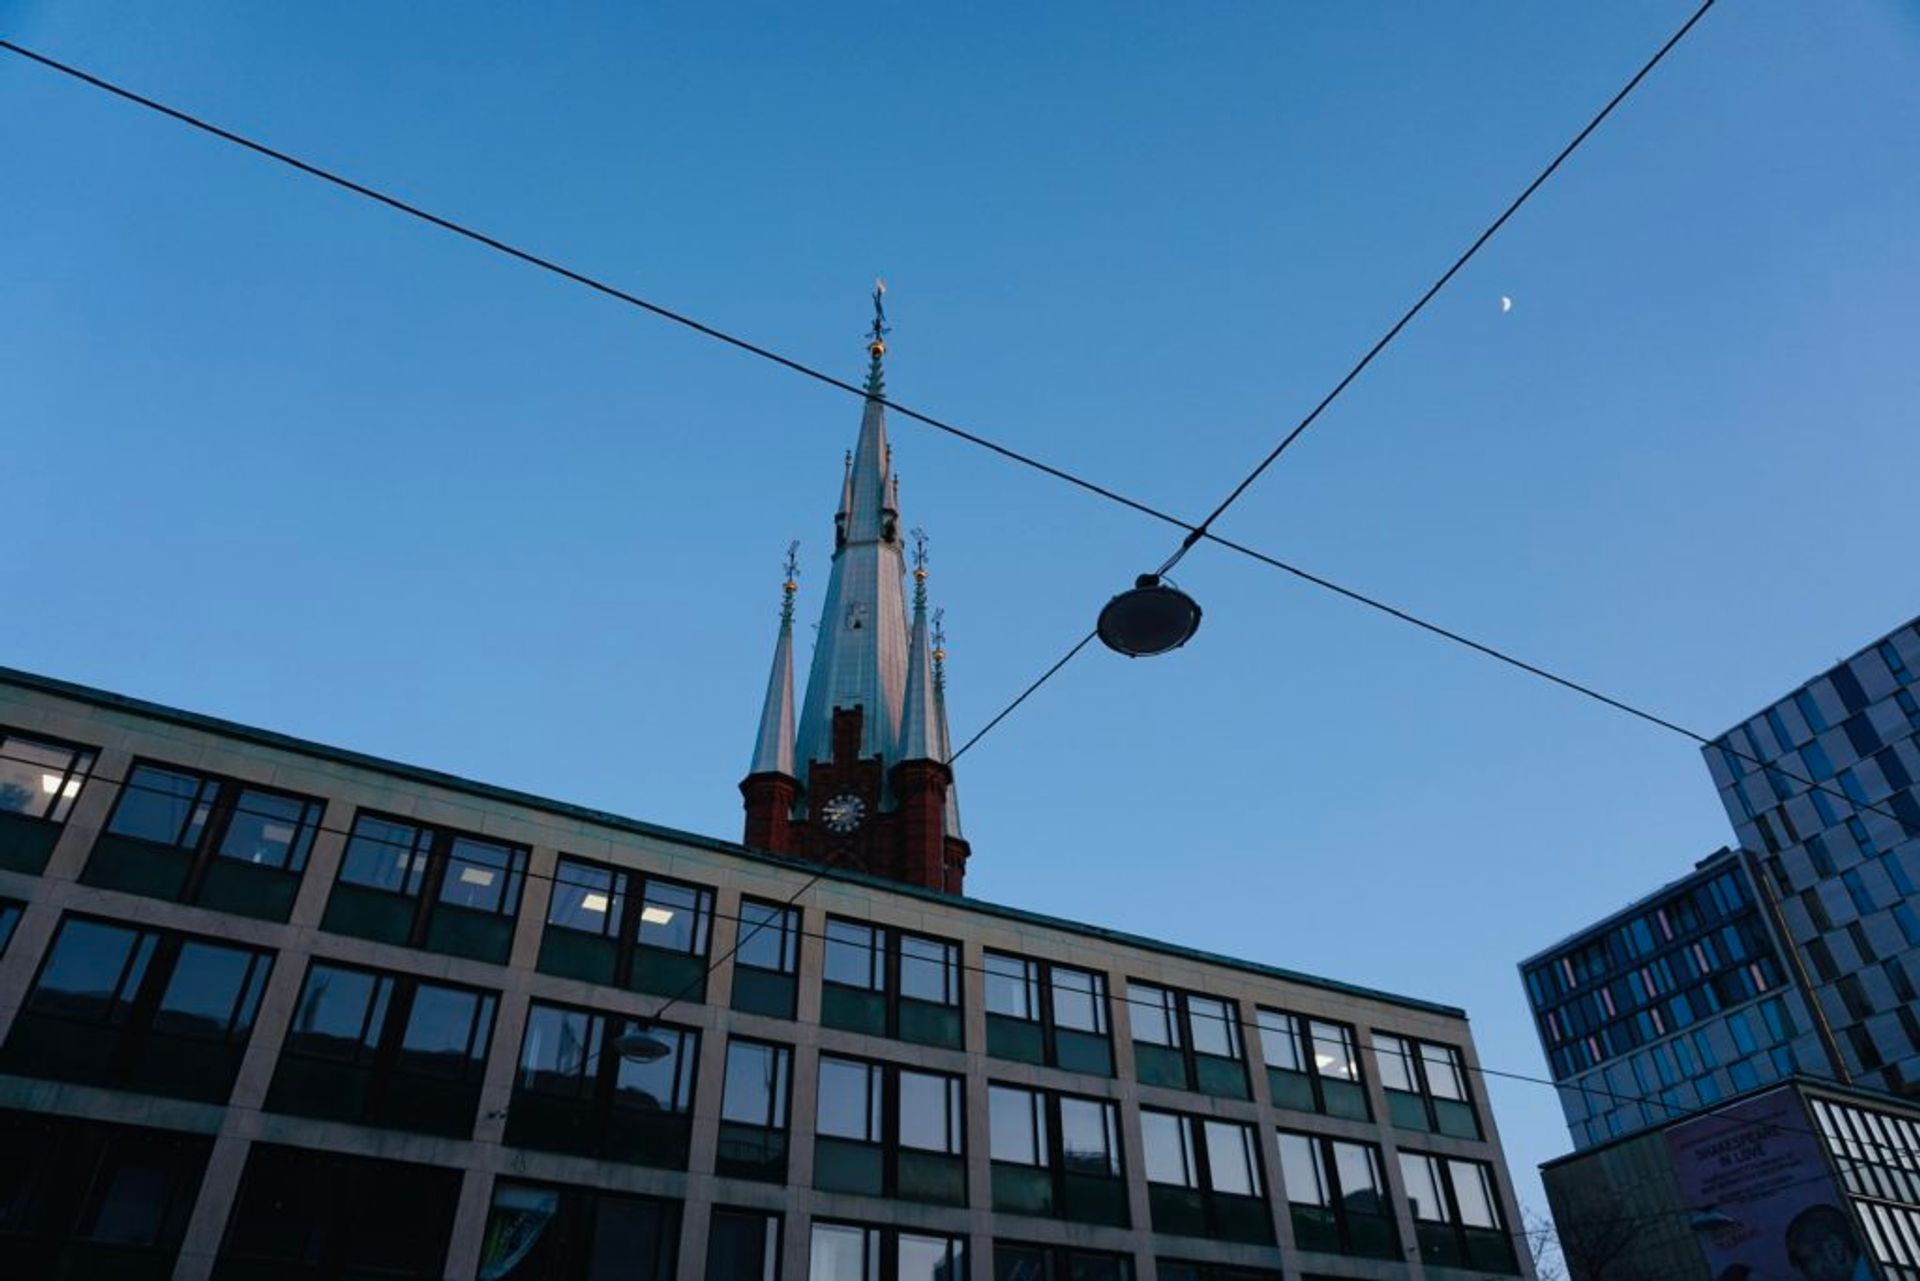 A church spire towers abover an office building.